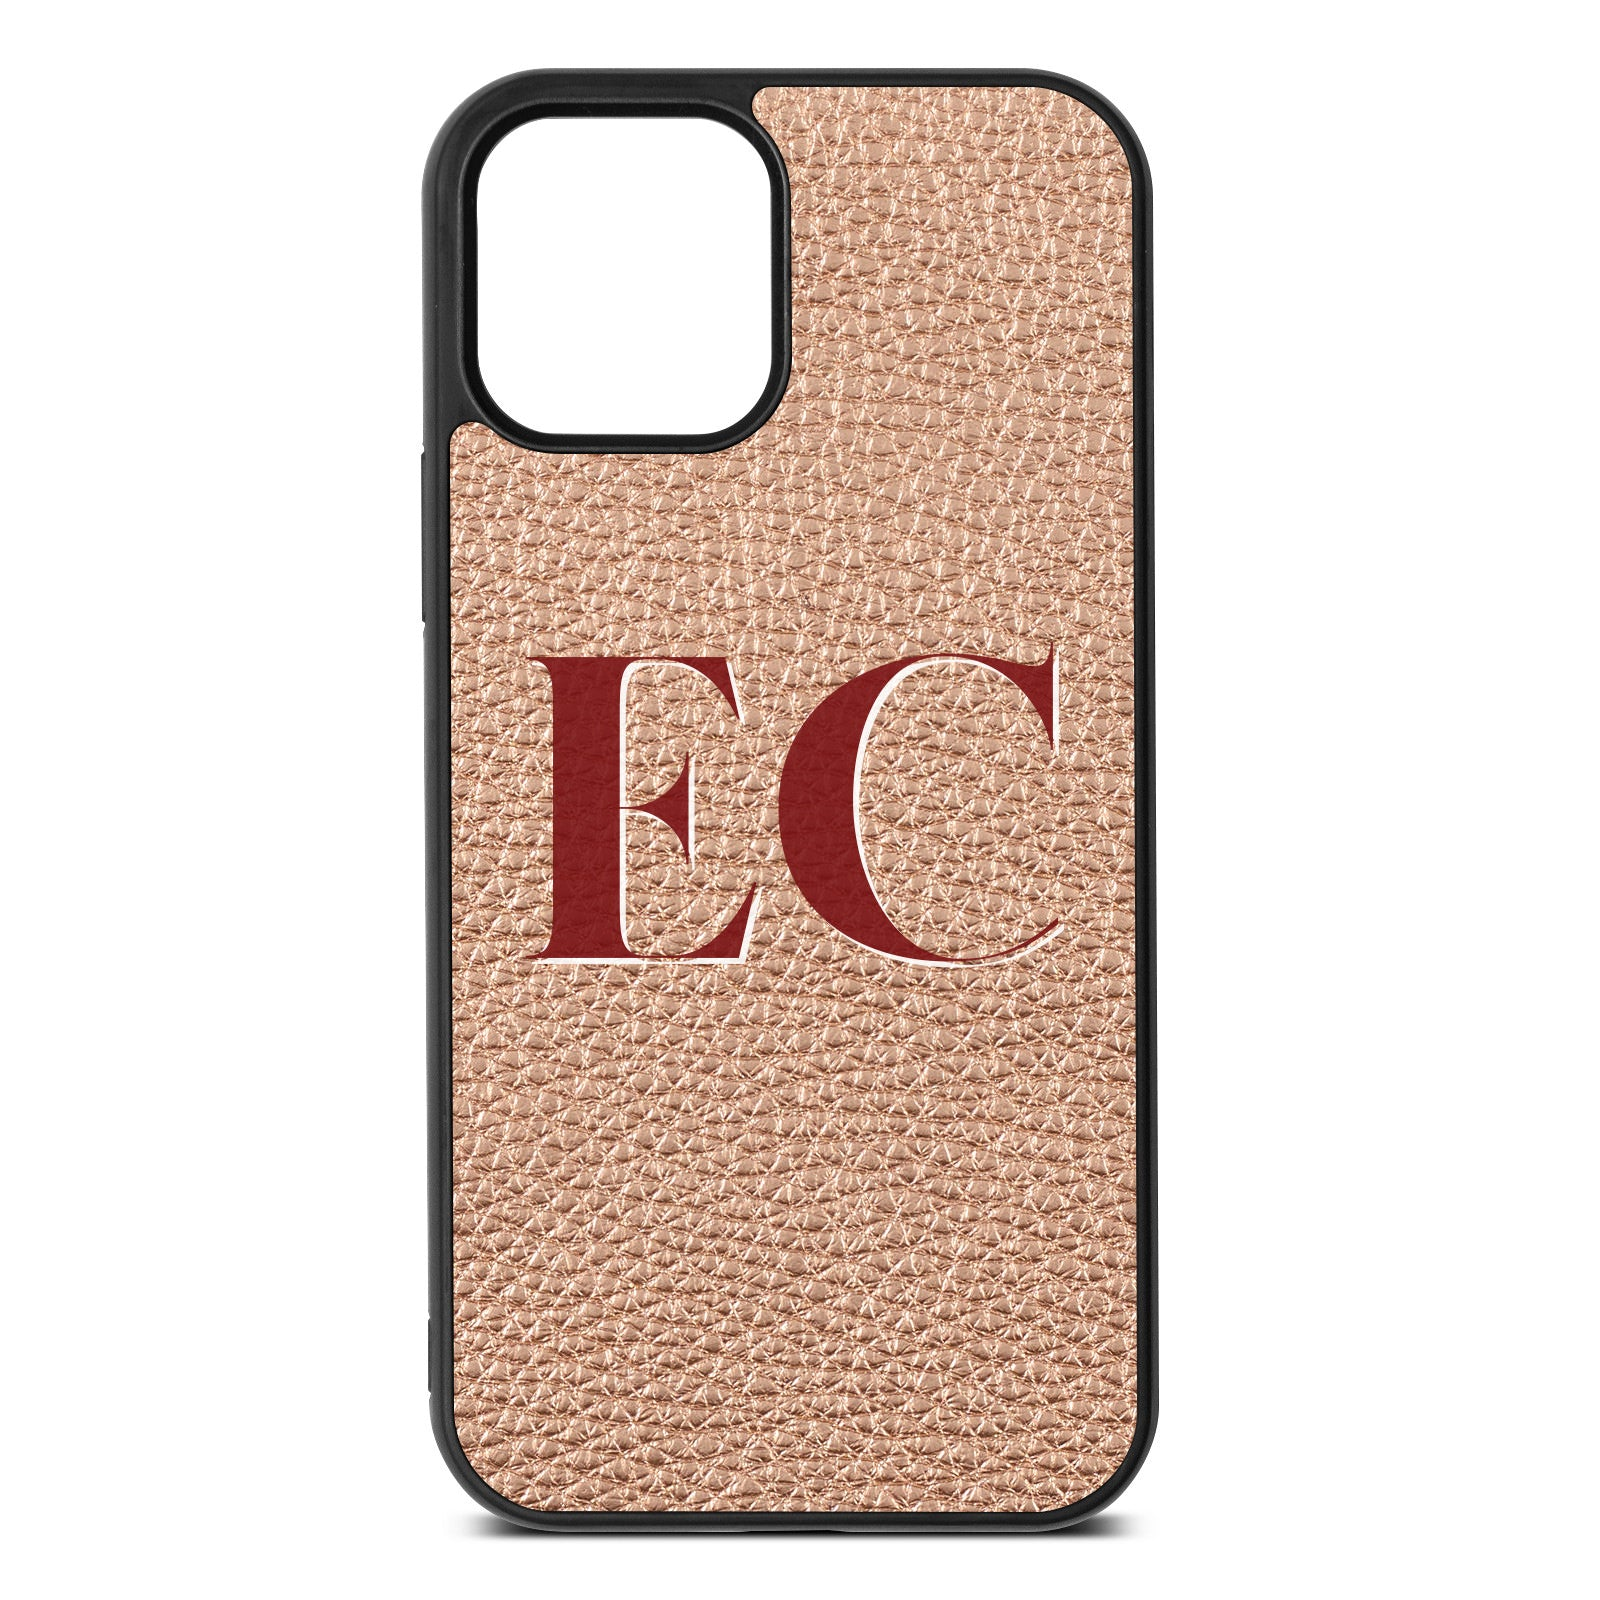 iPhone 12 Rose Gold Pebble Leather Case